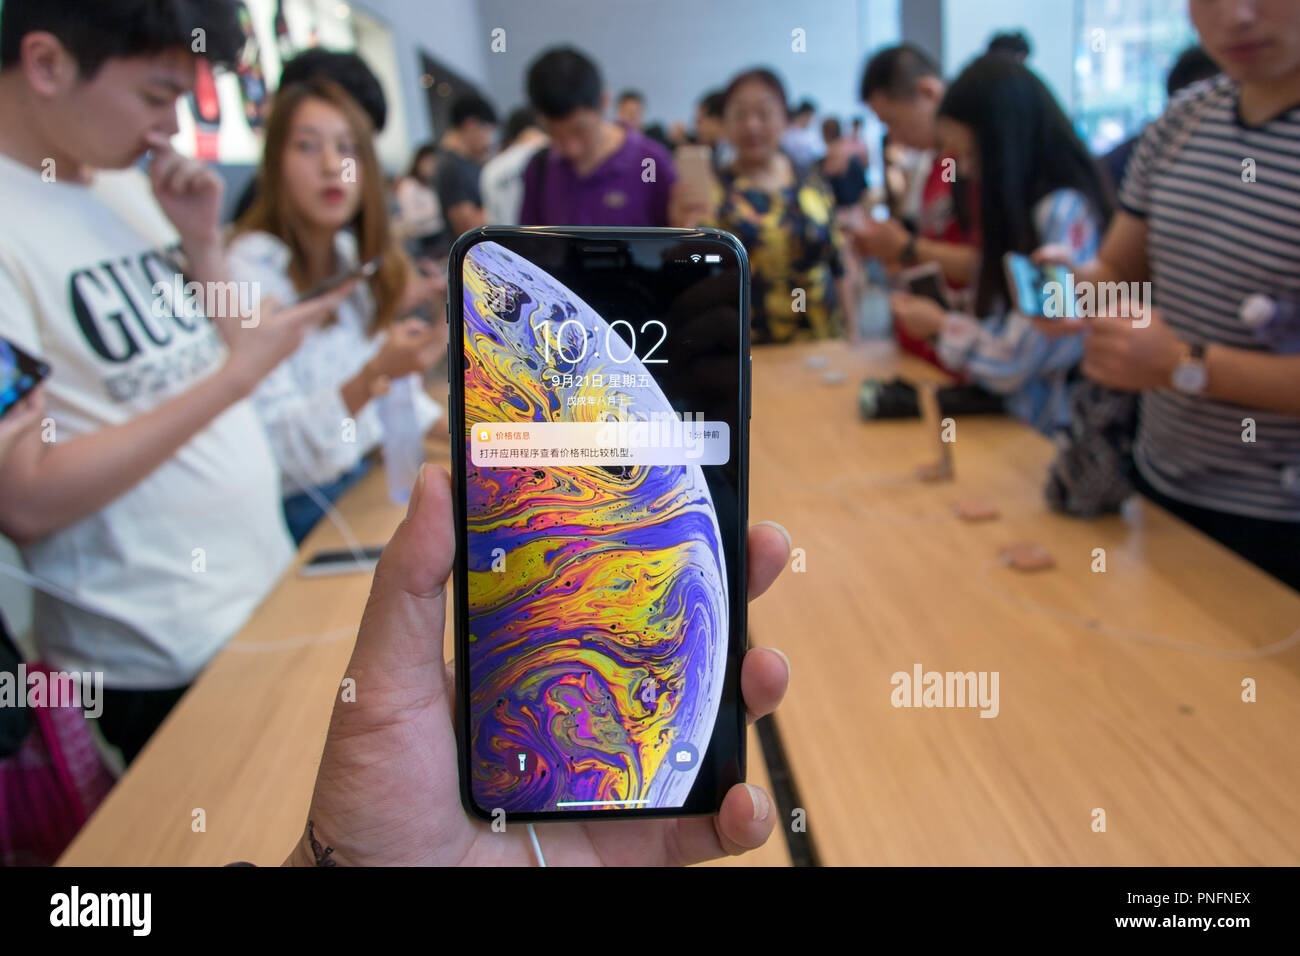 Shanghai, China. 21st Sep, 2018. People with newly released iPhone XS, iPhone XS MAX and iPhone XR at the Apple Store in Shanghai. Credit: SIPA Asia/ZUMA Wire/Alamy Live News - Stock Image